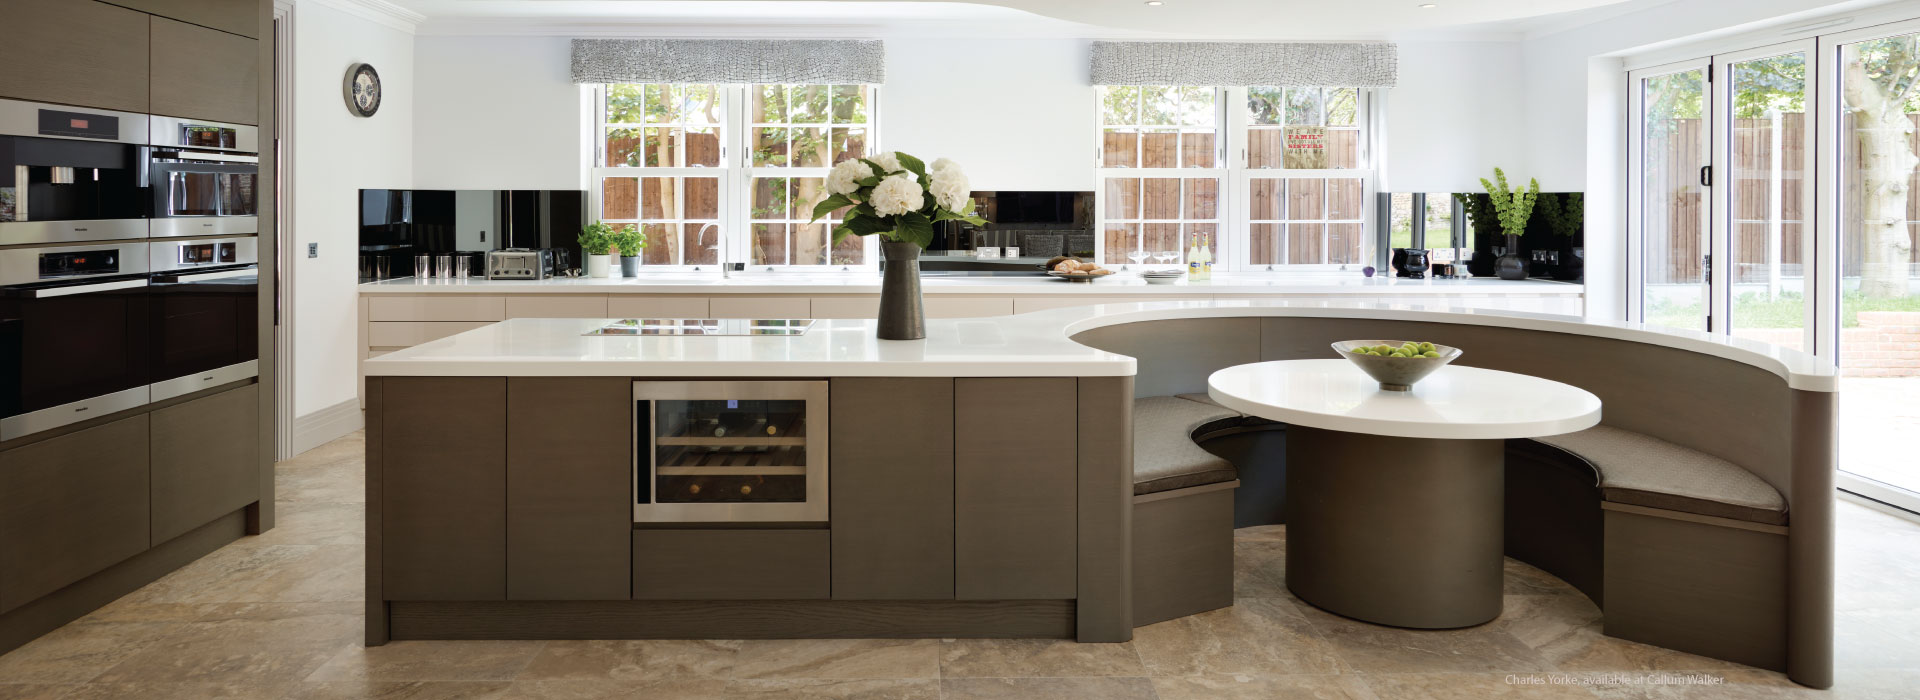 designer kitchens scotland kitchen design scotland audidatlevante 3291